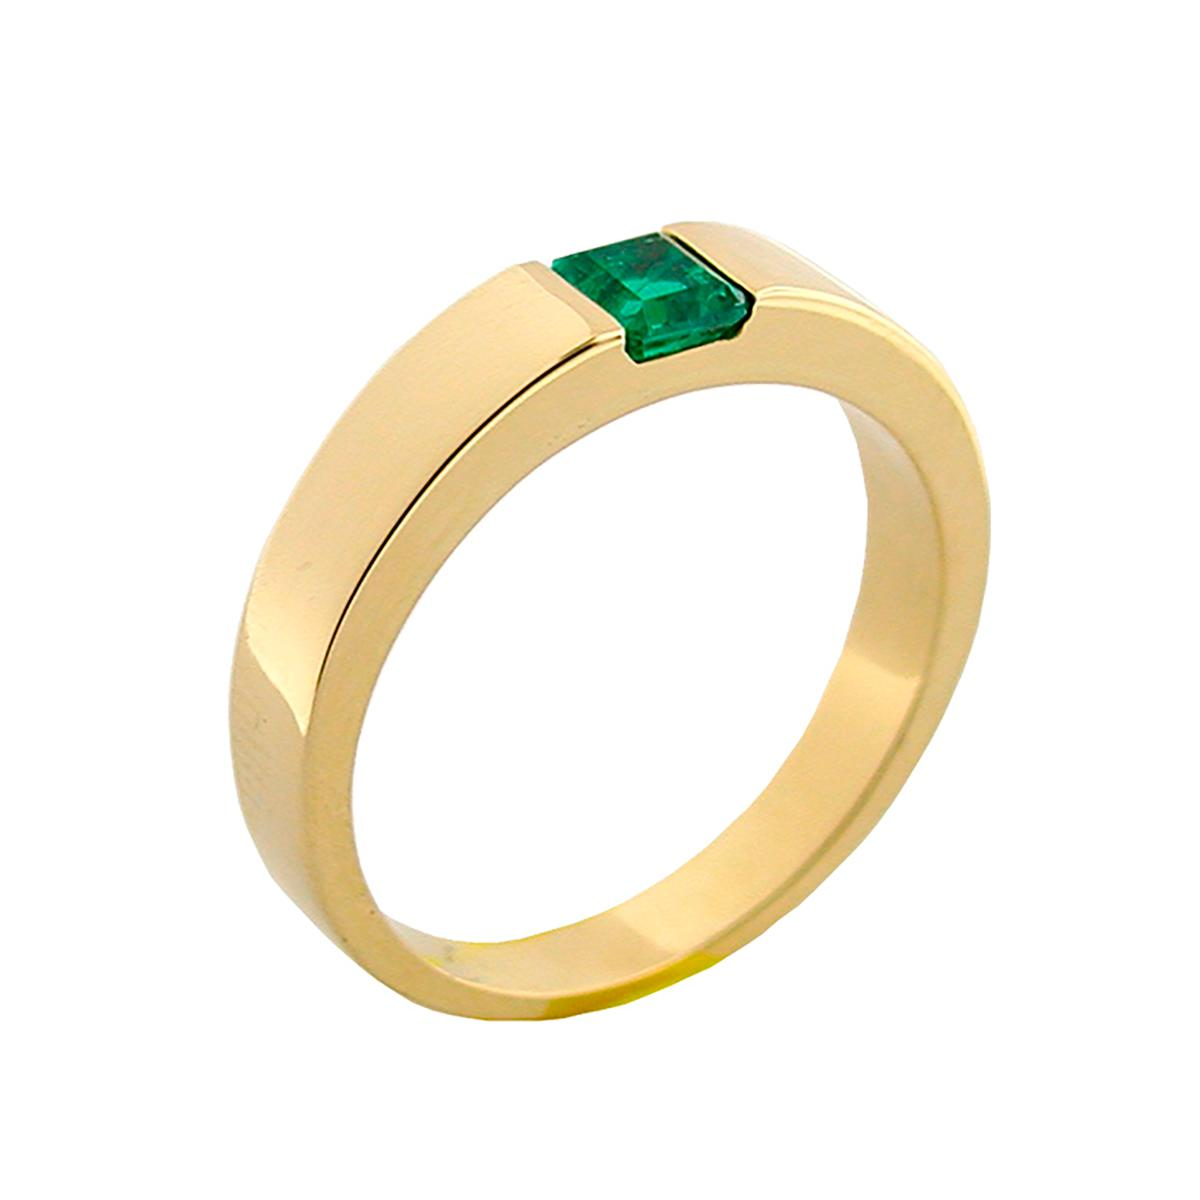 solitaire-wedding-band-with-square-natural-emerald-in-18k-gold